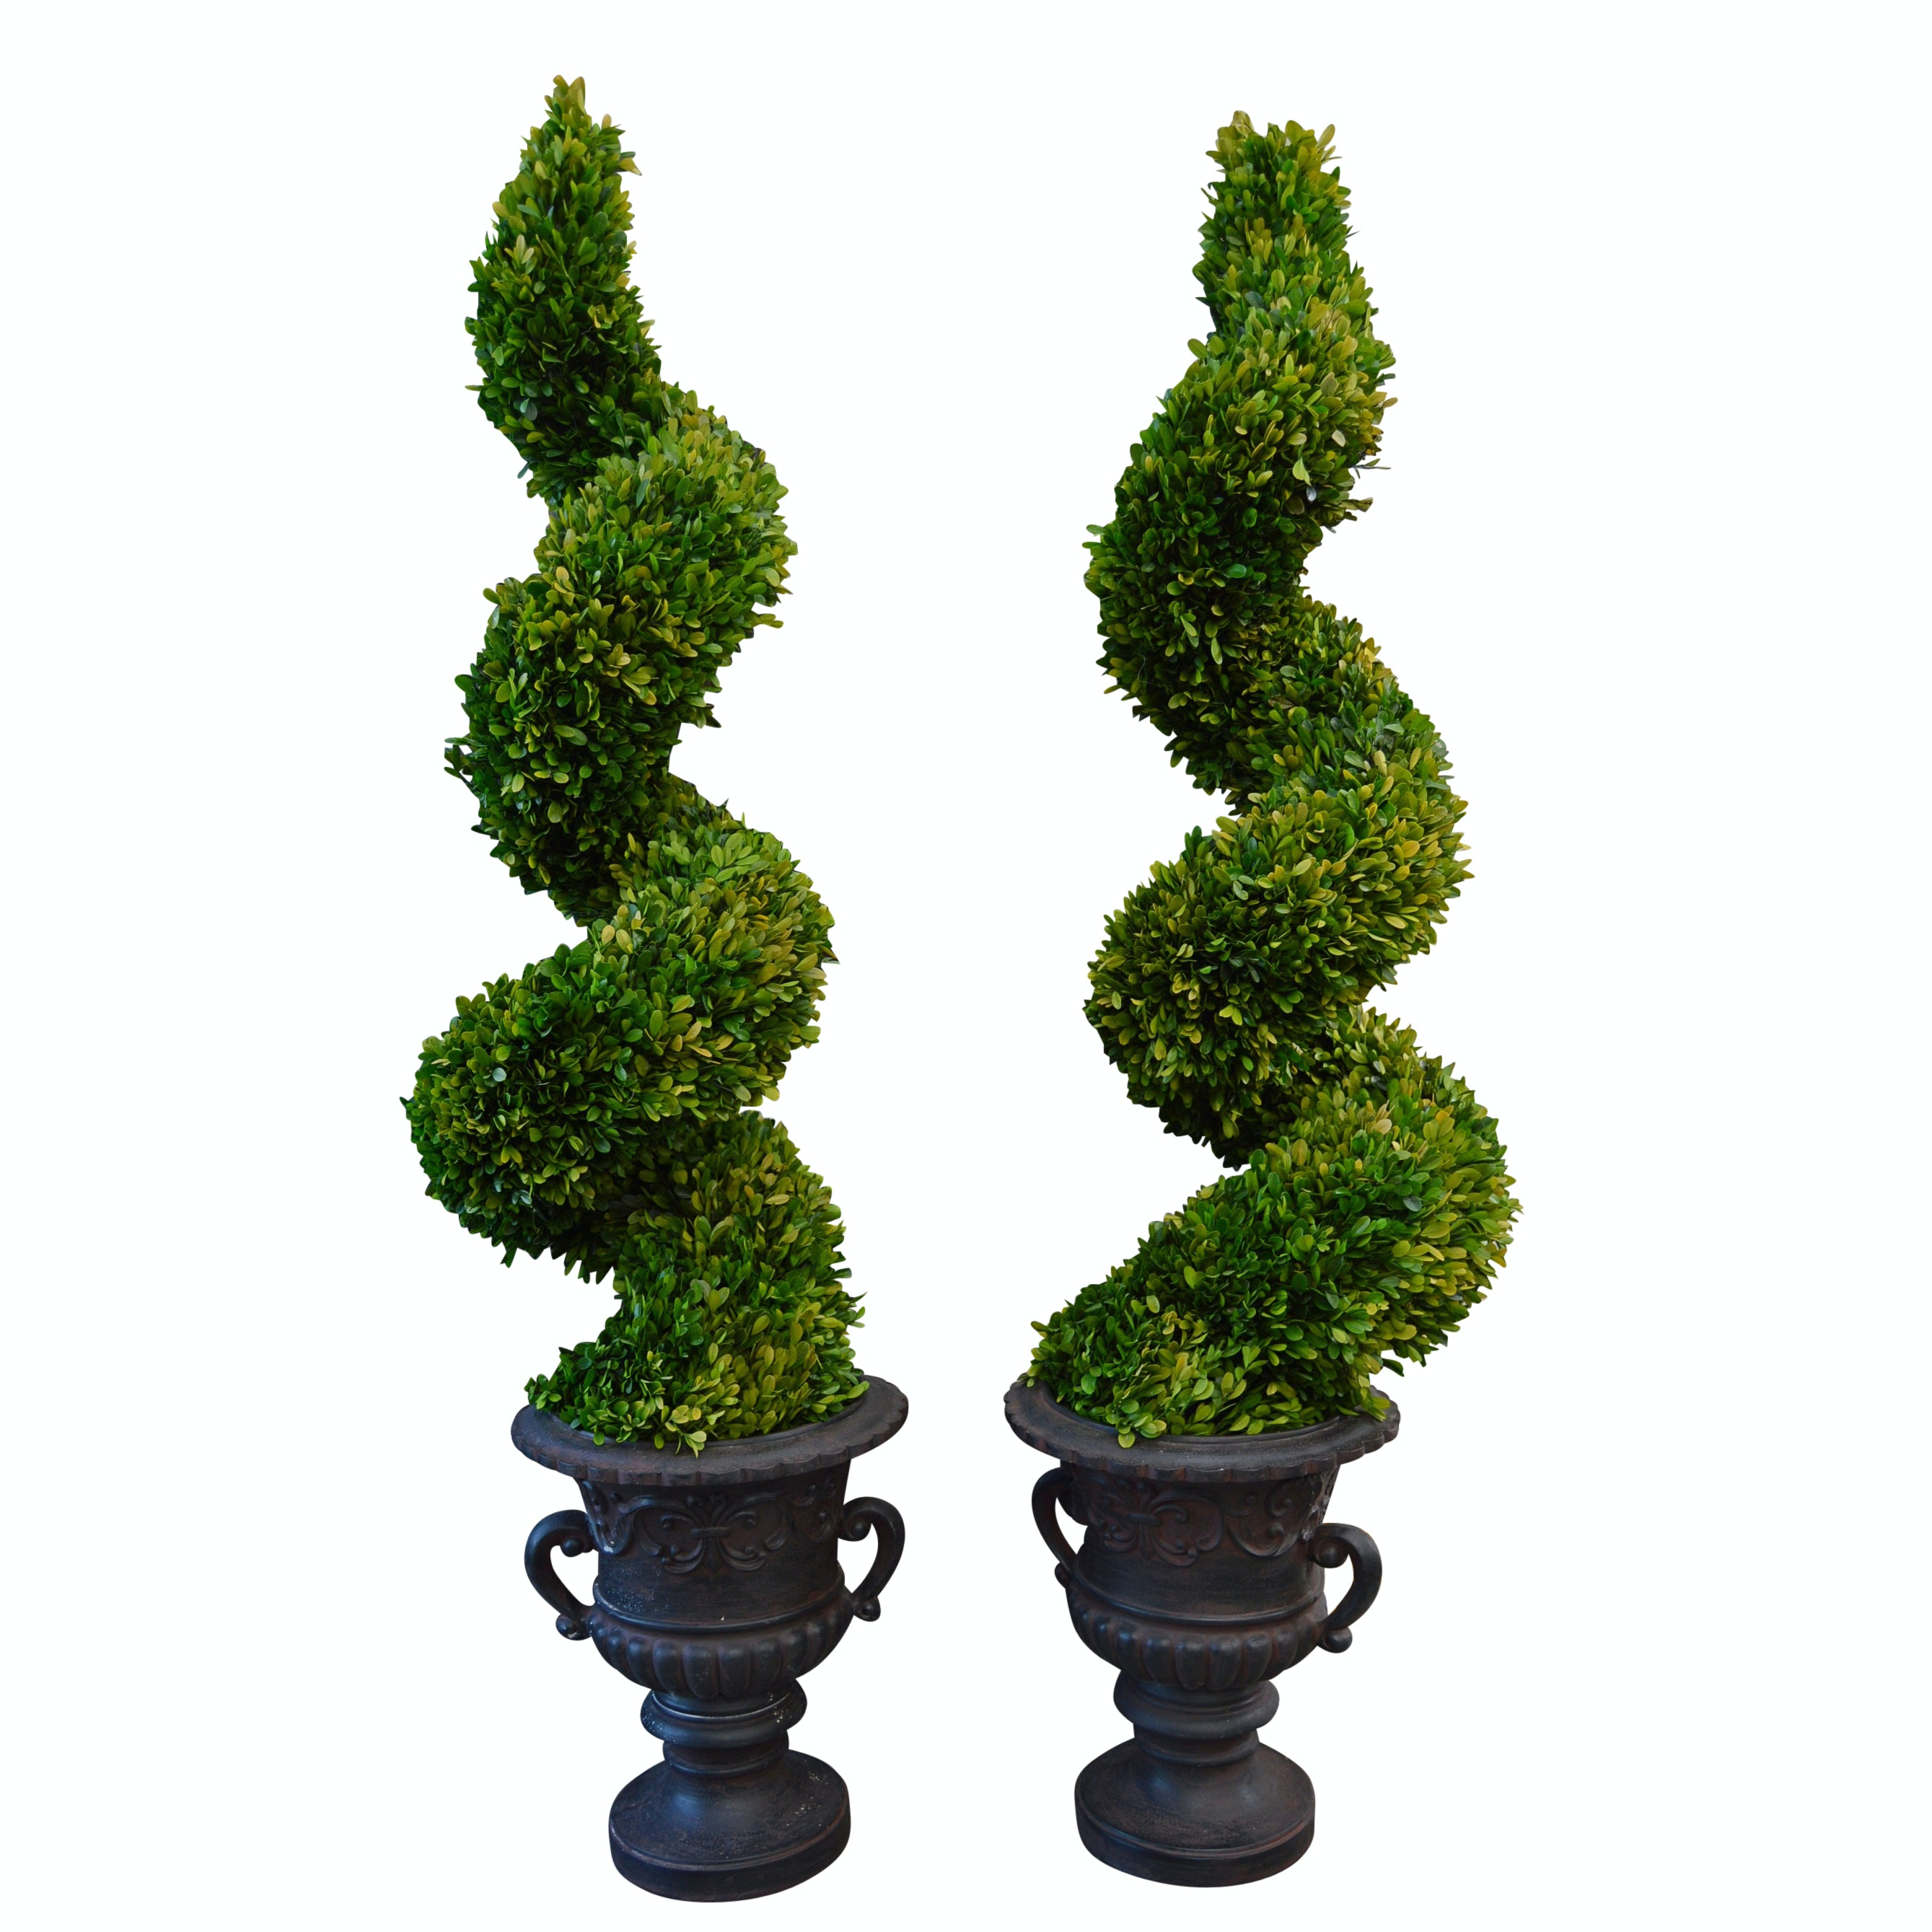 Pair of Large Preserved Genuine Boxwood Spiral Topiaries from Uttermost